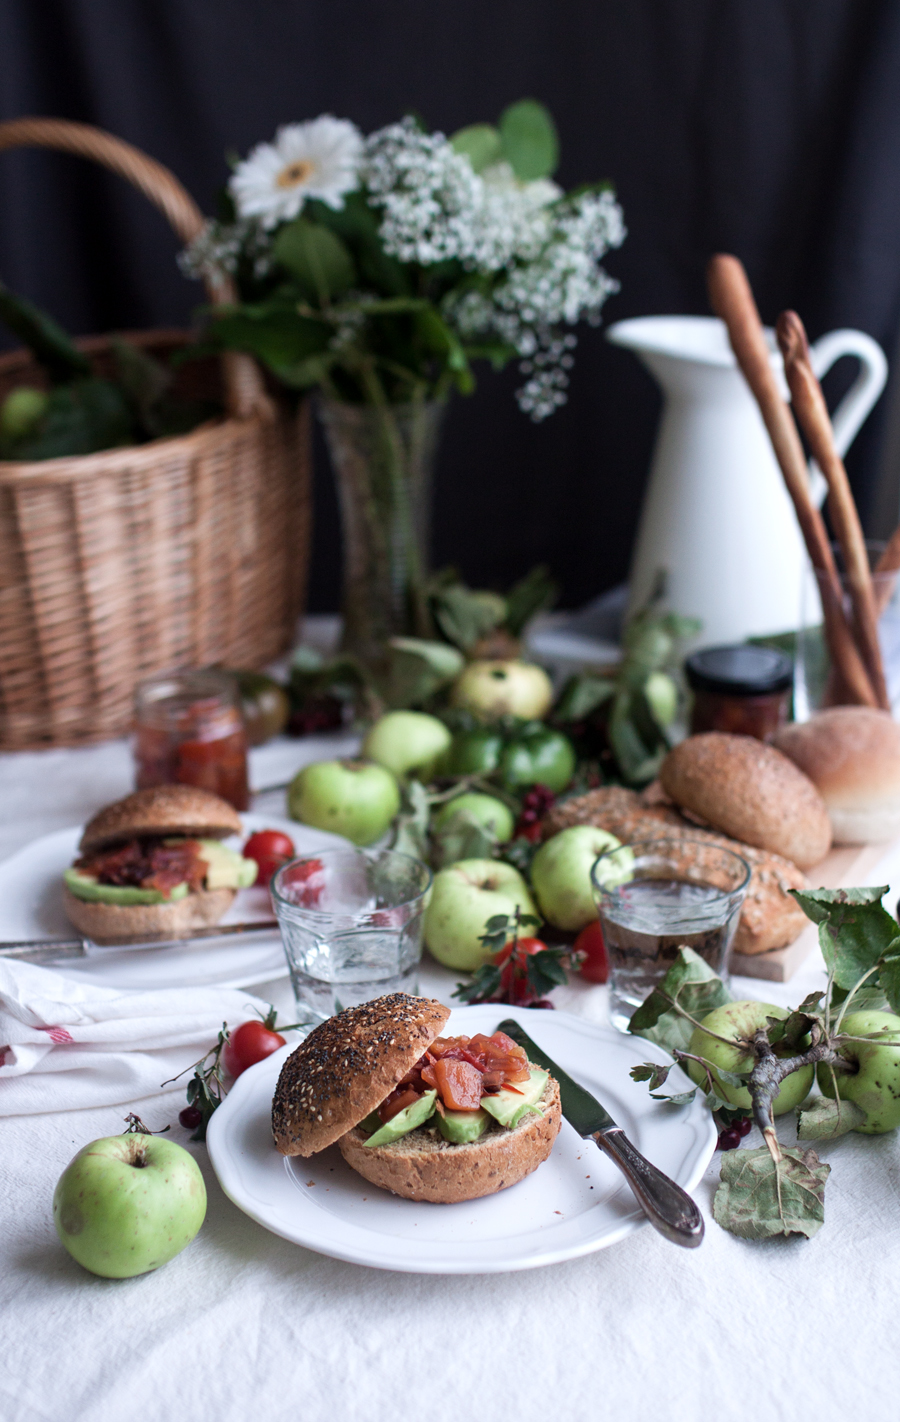 Vegan Apple and Tomato Chutney Recipe - The Little Plantation